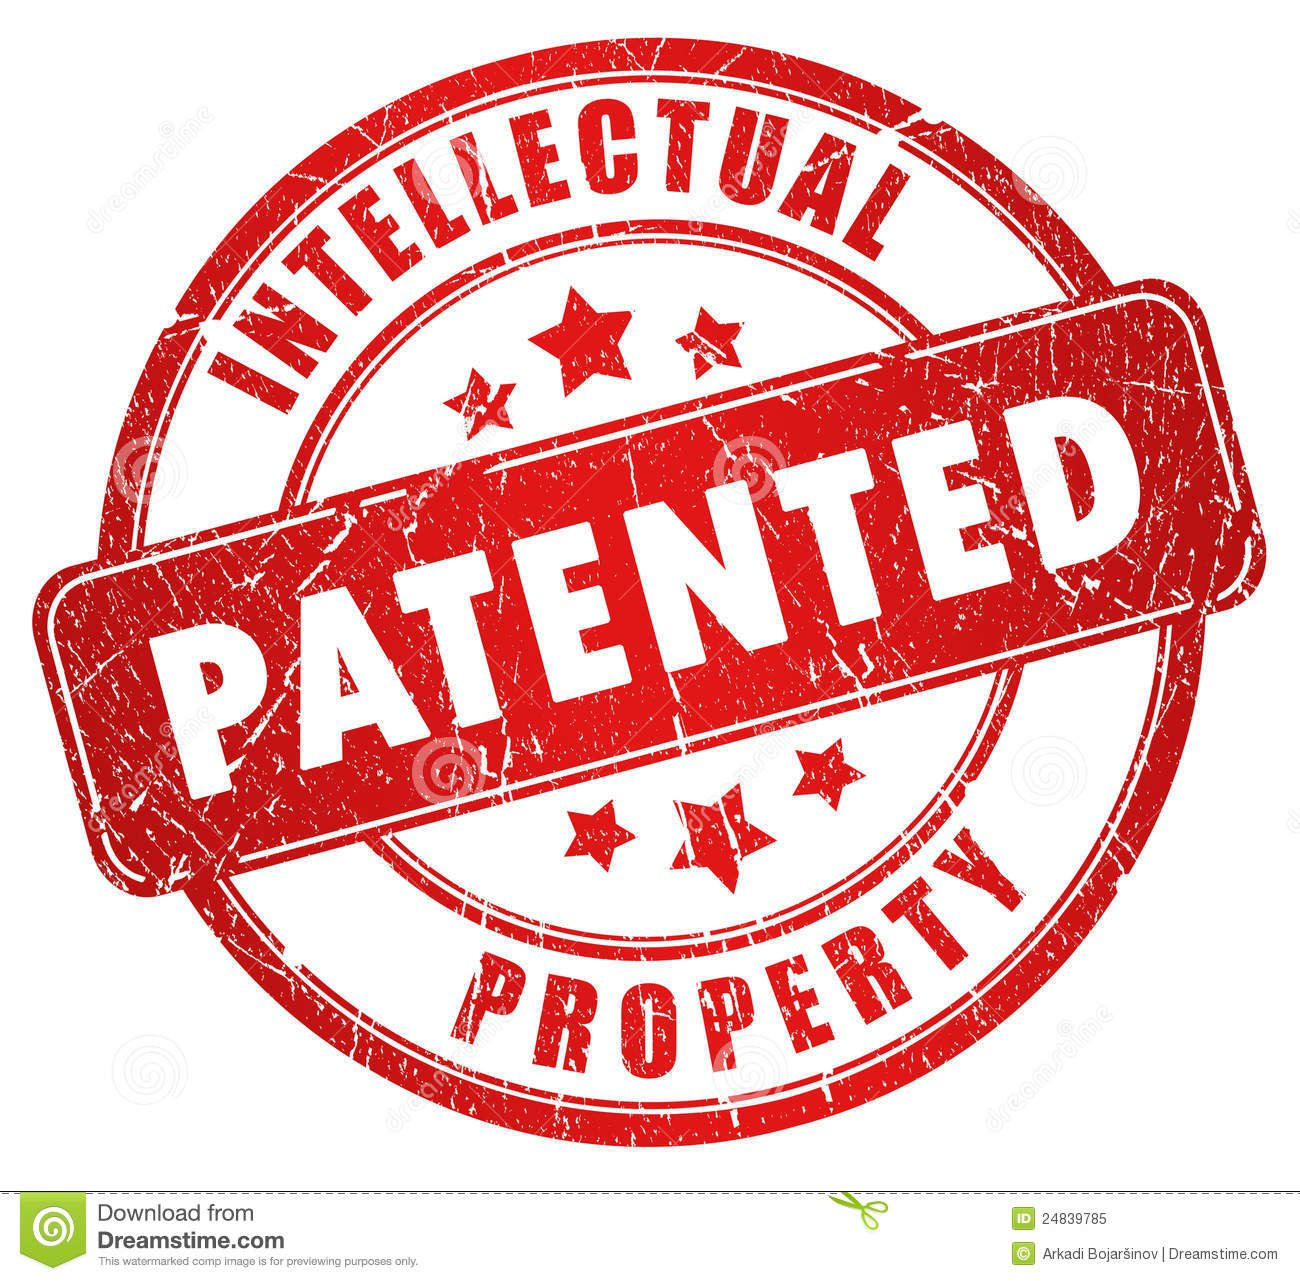 PATENT APPLICATION PROCEDURE IN TURKISH PATENT SYSTEM ACCORDING TO IP LAW (6769)